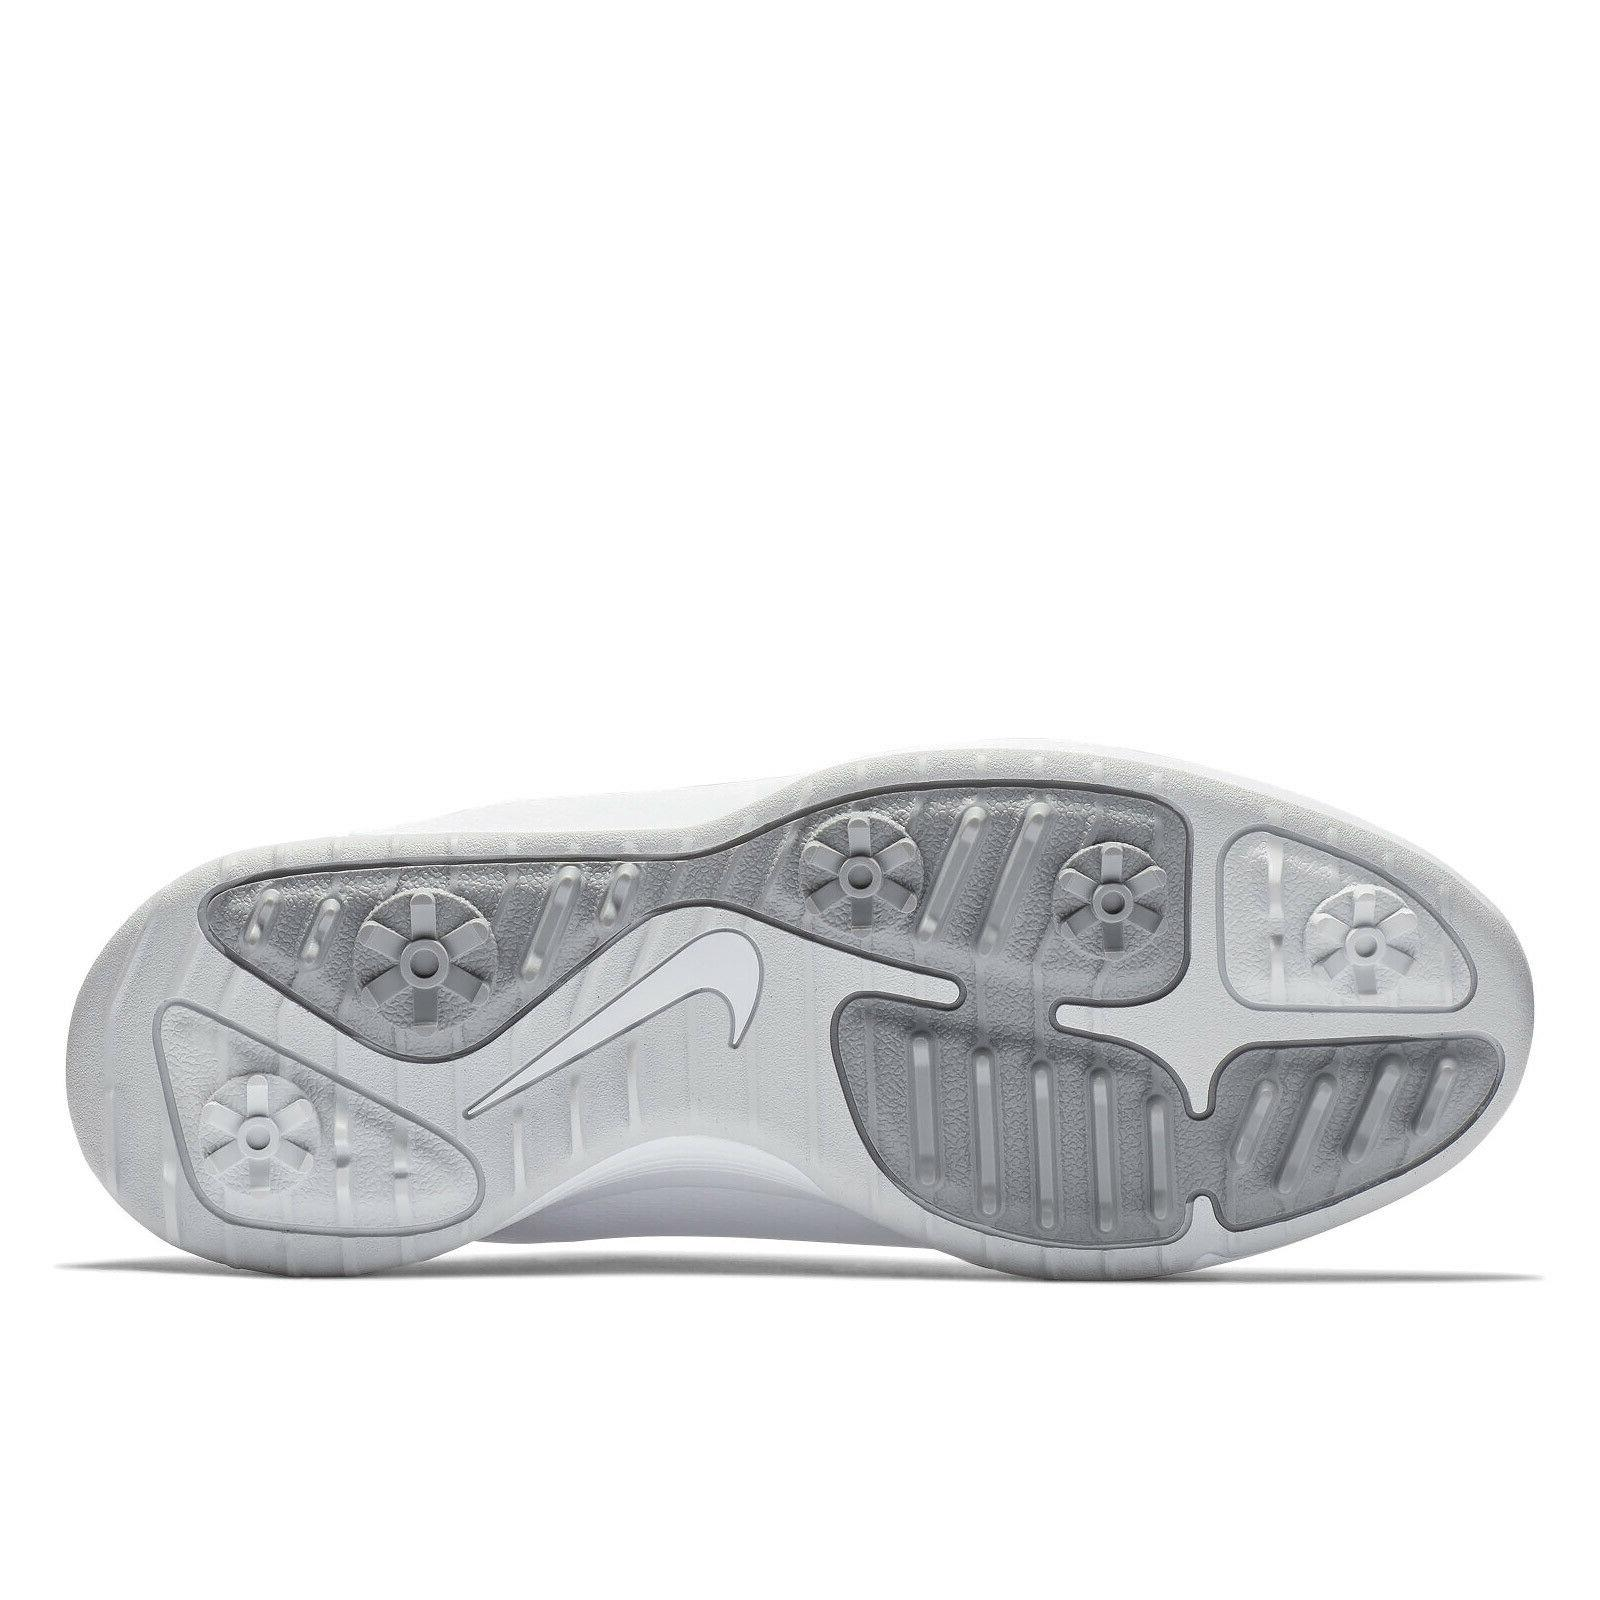 SHOES Spikes, WIDTH,